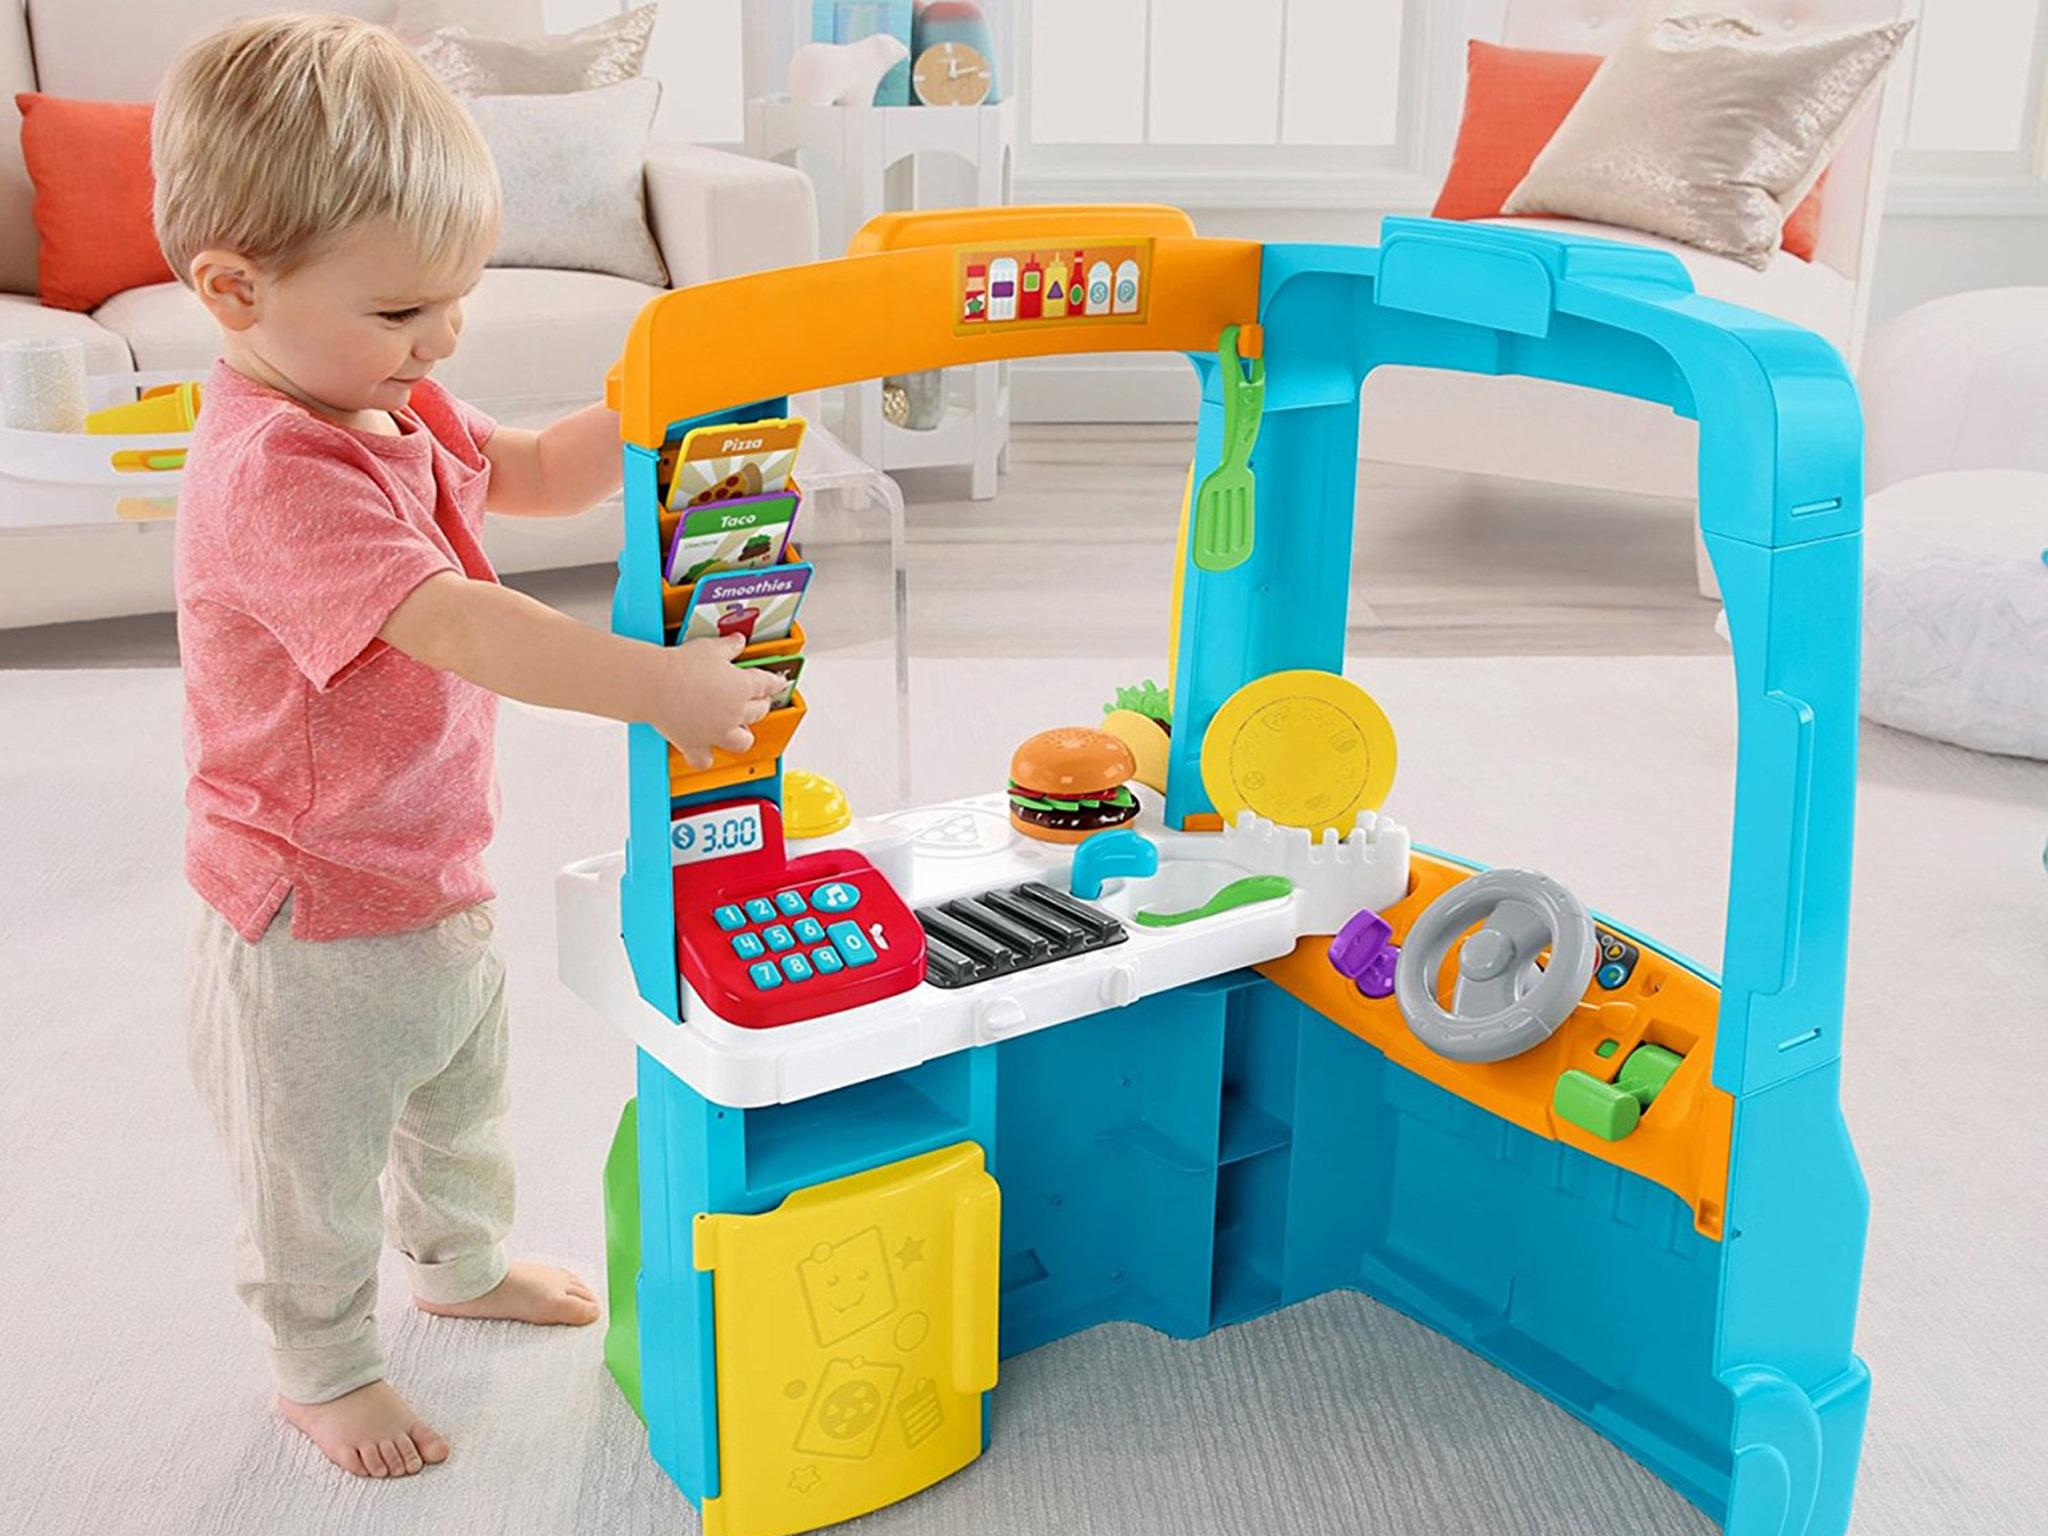 10 Best Gifts For 2 Year Olds The Independent